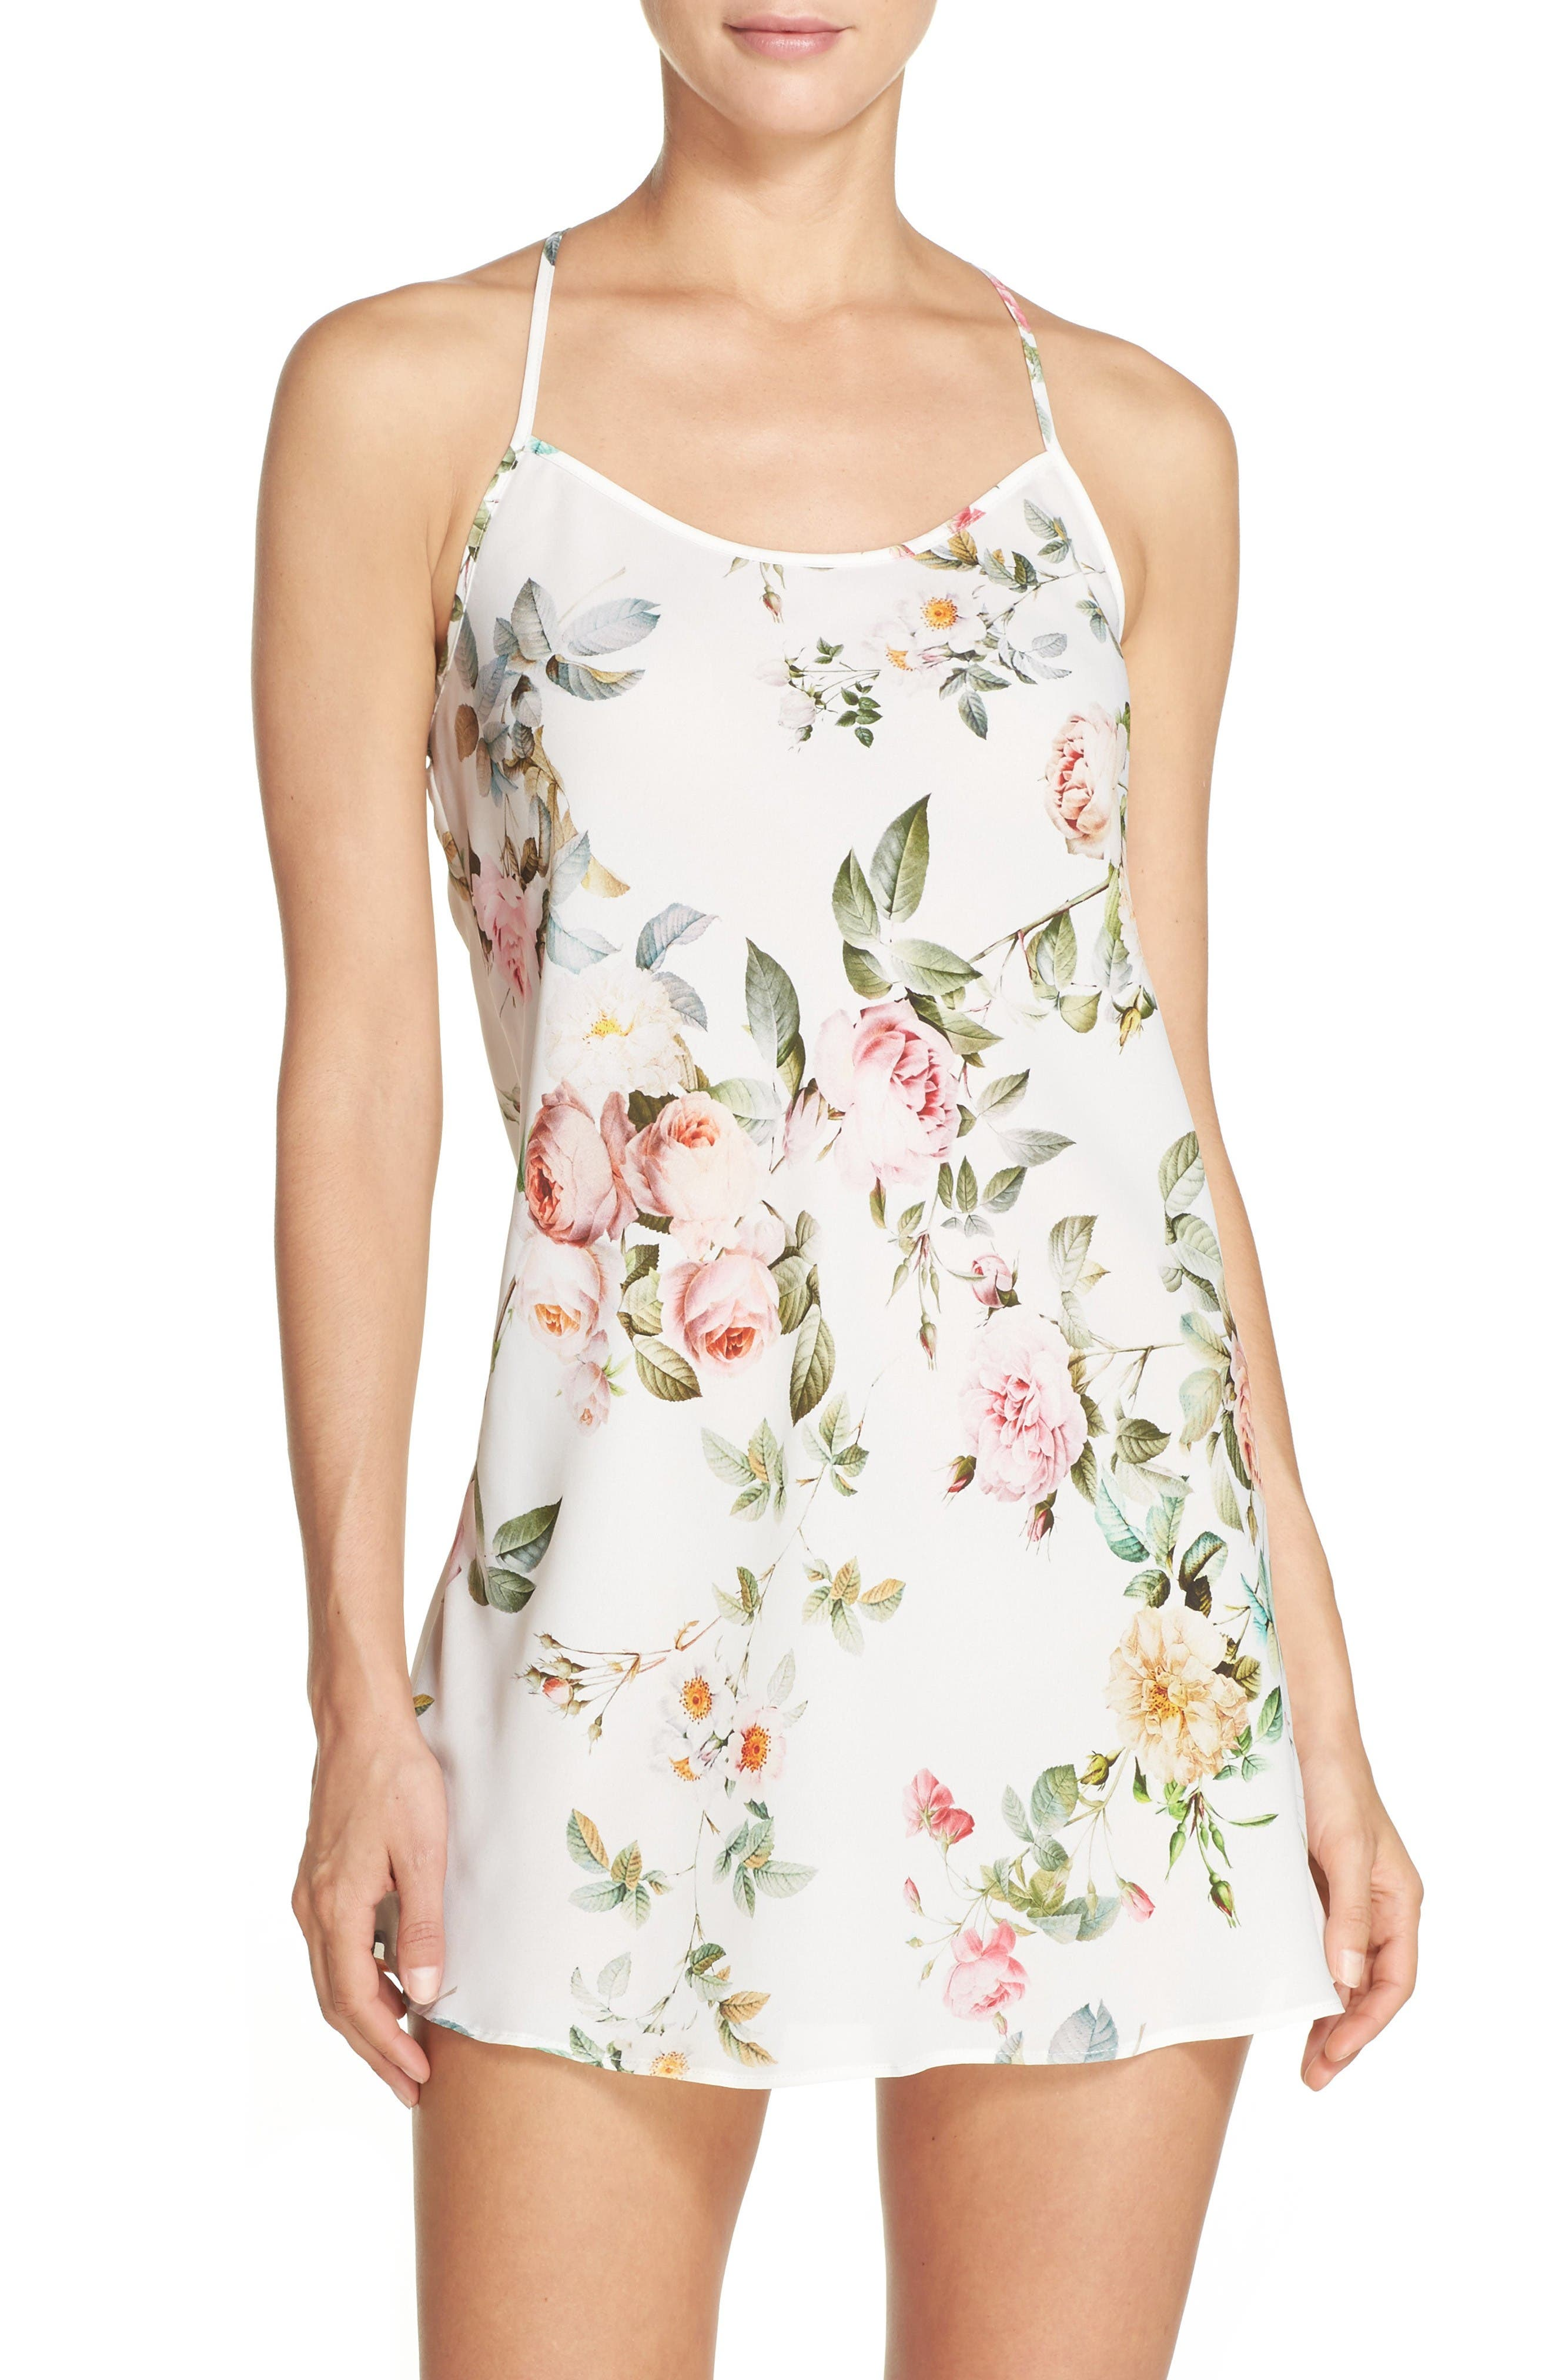 Abigal Chemise,                         Main,                         color, Ivory Floral